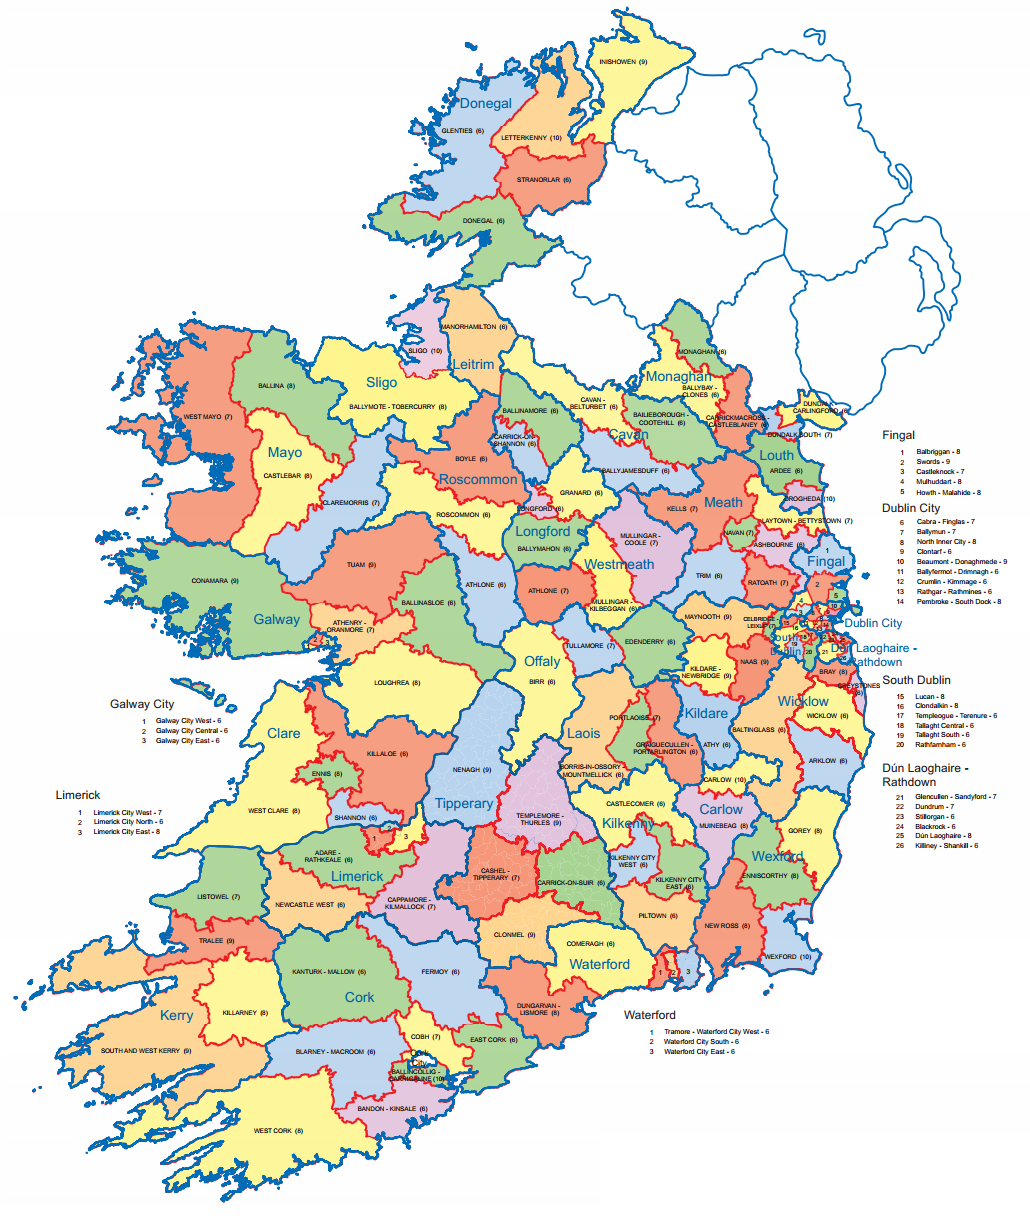 http://cdn.thejournal.ie/media/2013/05/bigirelandmap.png